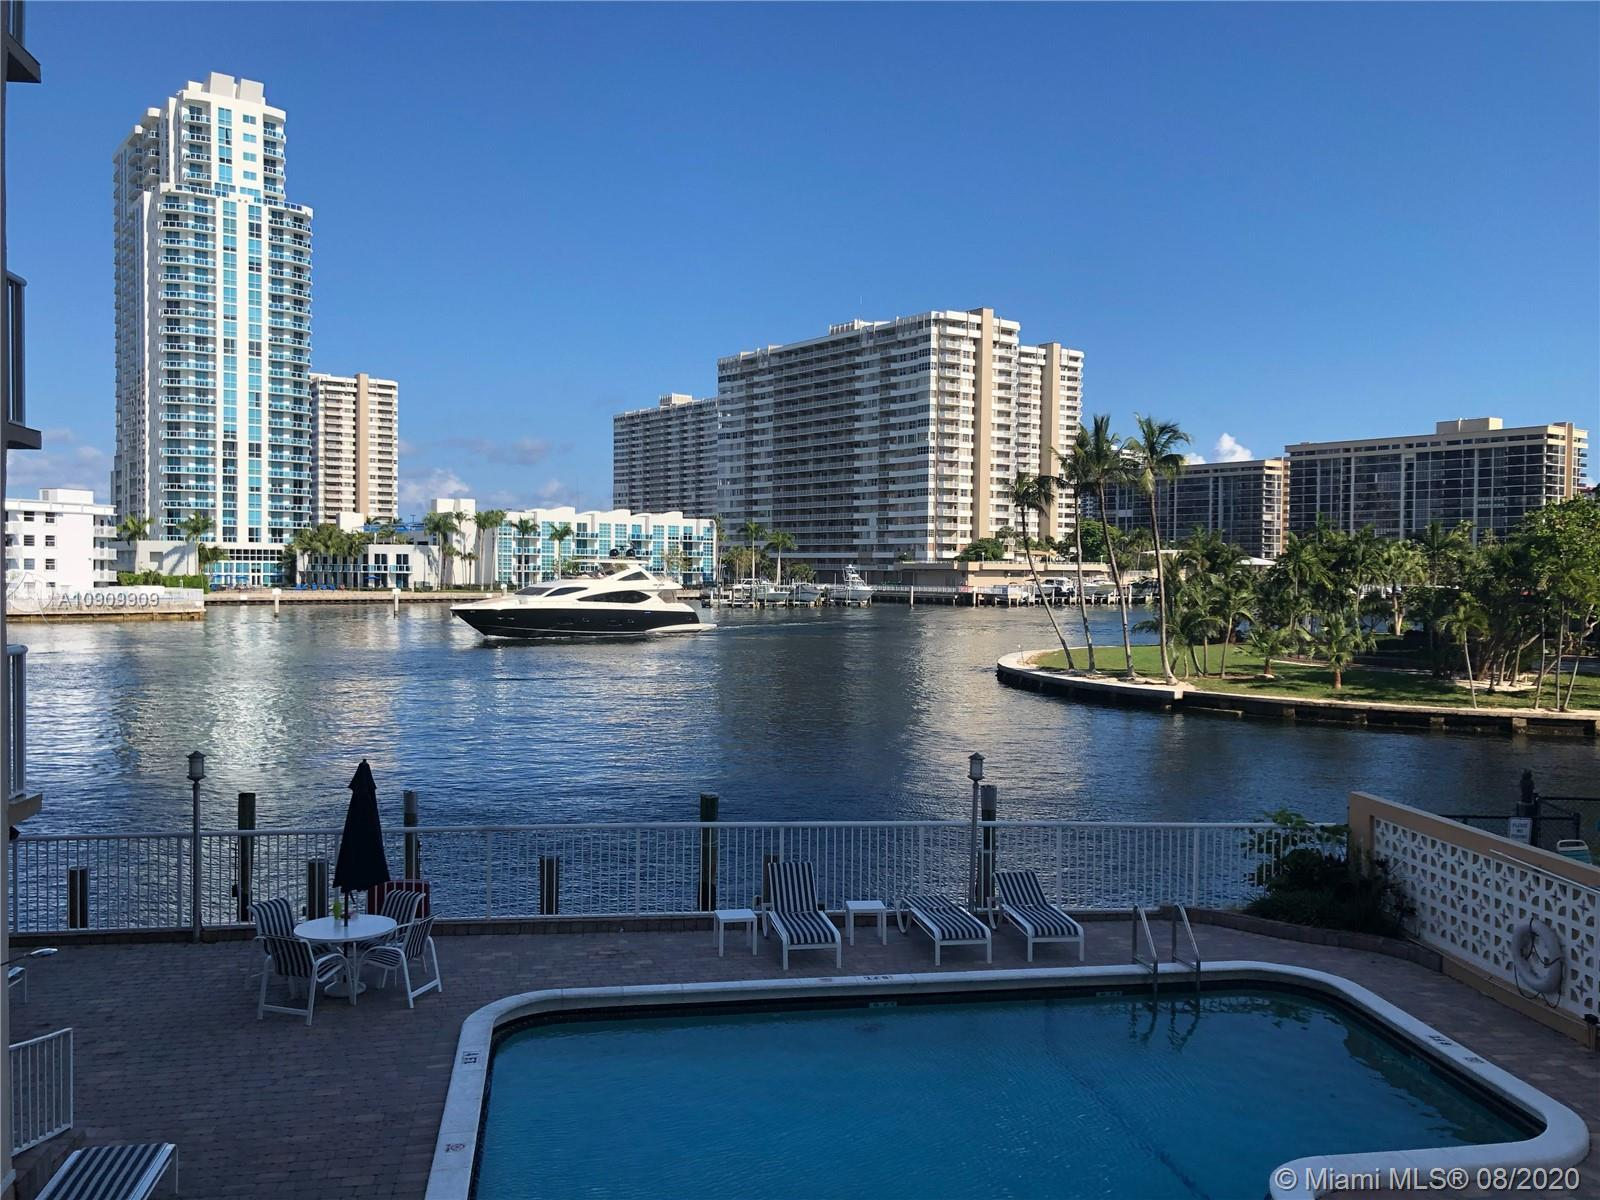 GEORGES PANORAMIC INTRACOASTAL VIEW, LARGE 3 BEDROOM/ 2 BATH COMPLETED UPDATE, WIDE OPEN BALCONNY, A